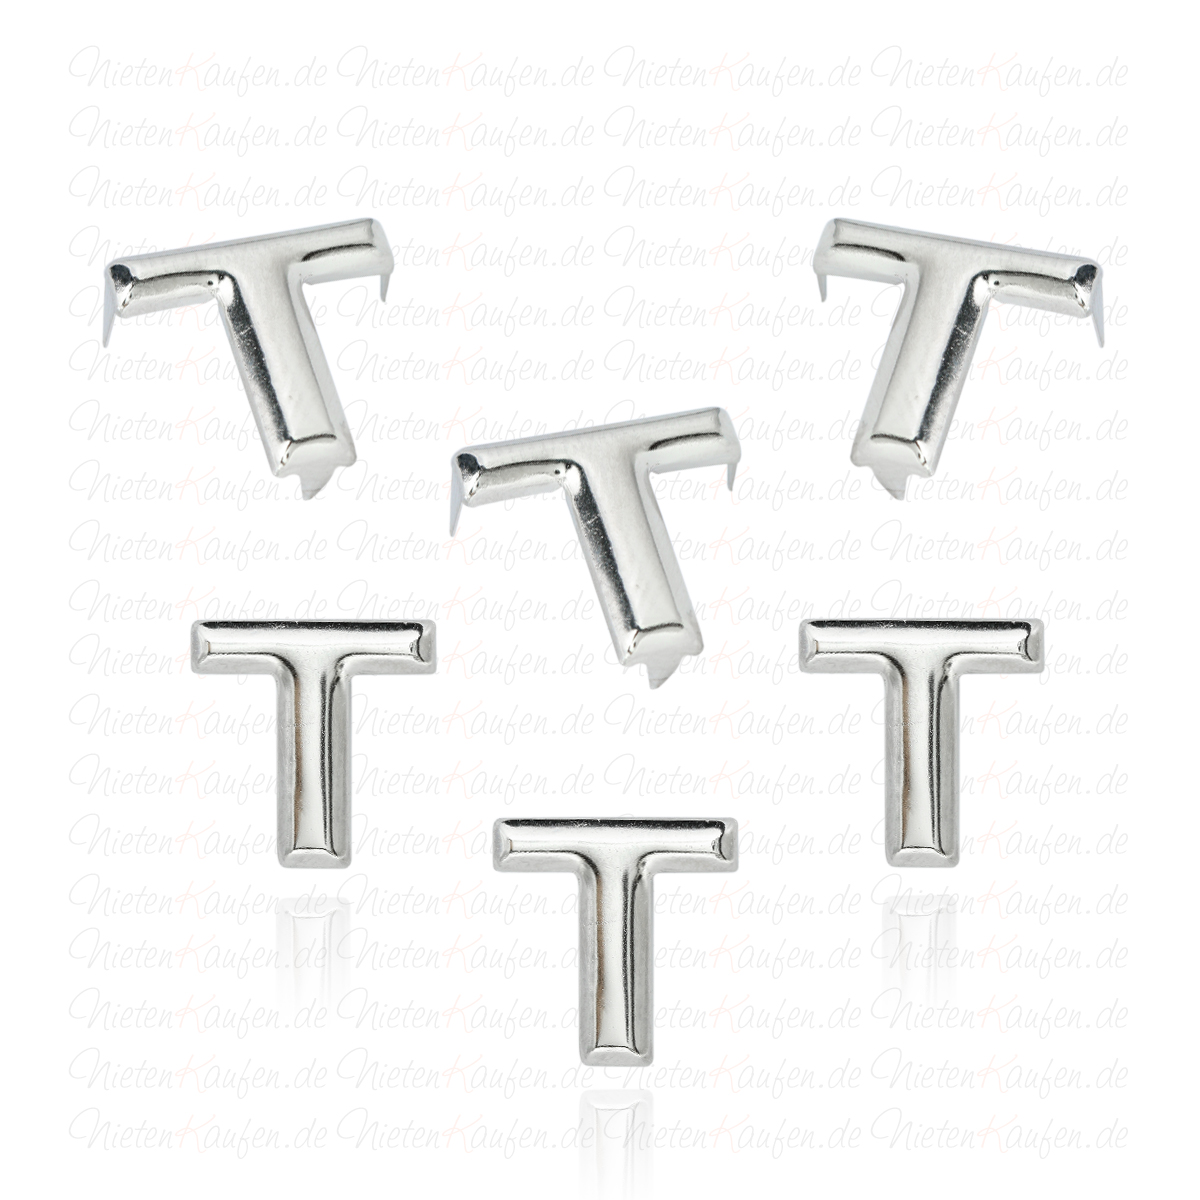 t alphabet buchstaben niete aus metall. Black Bedroom Furniture Sets. Home Design Ideas